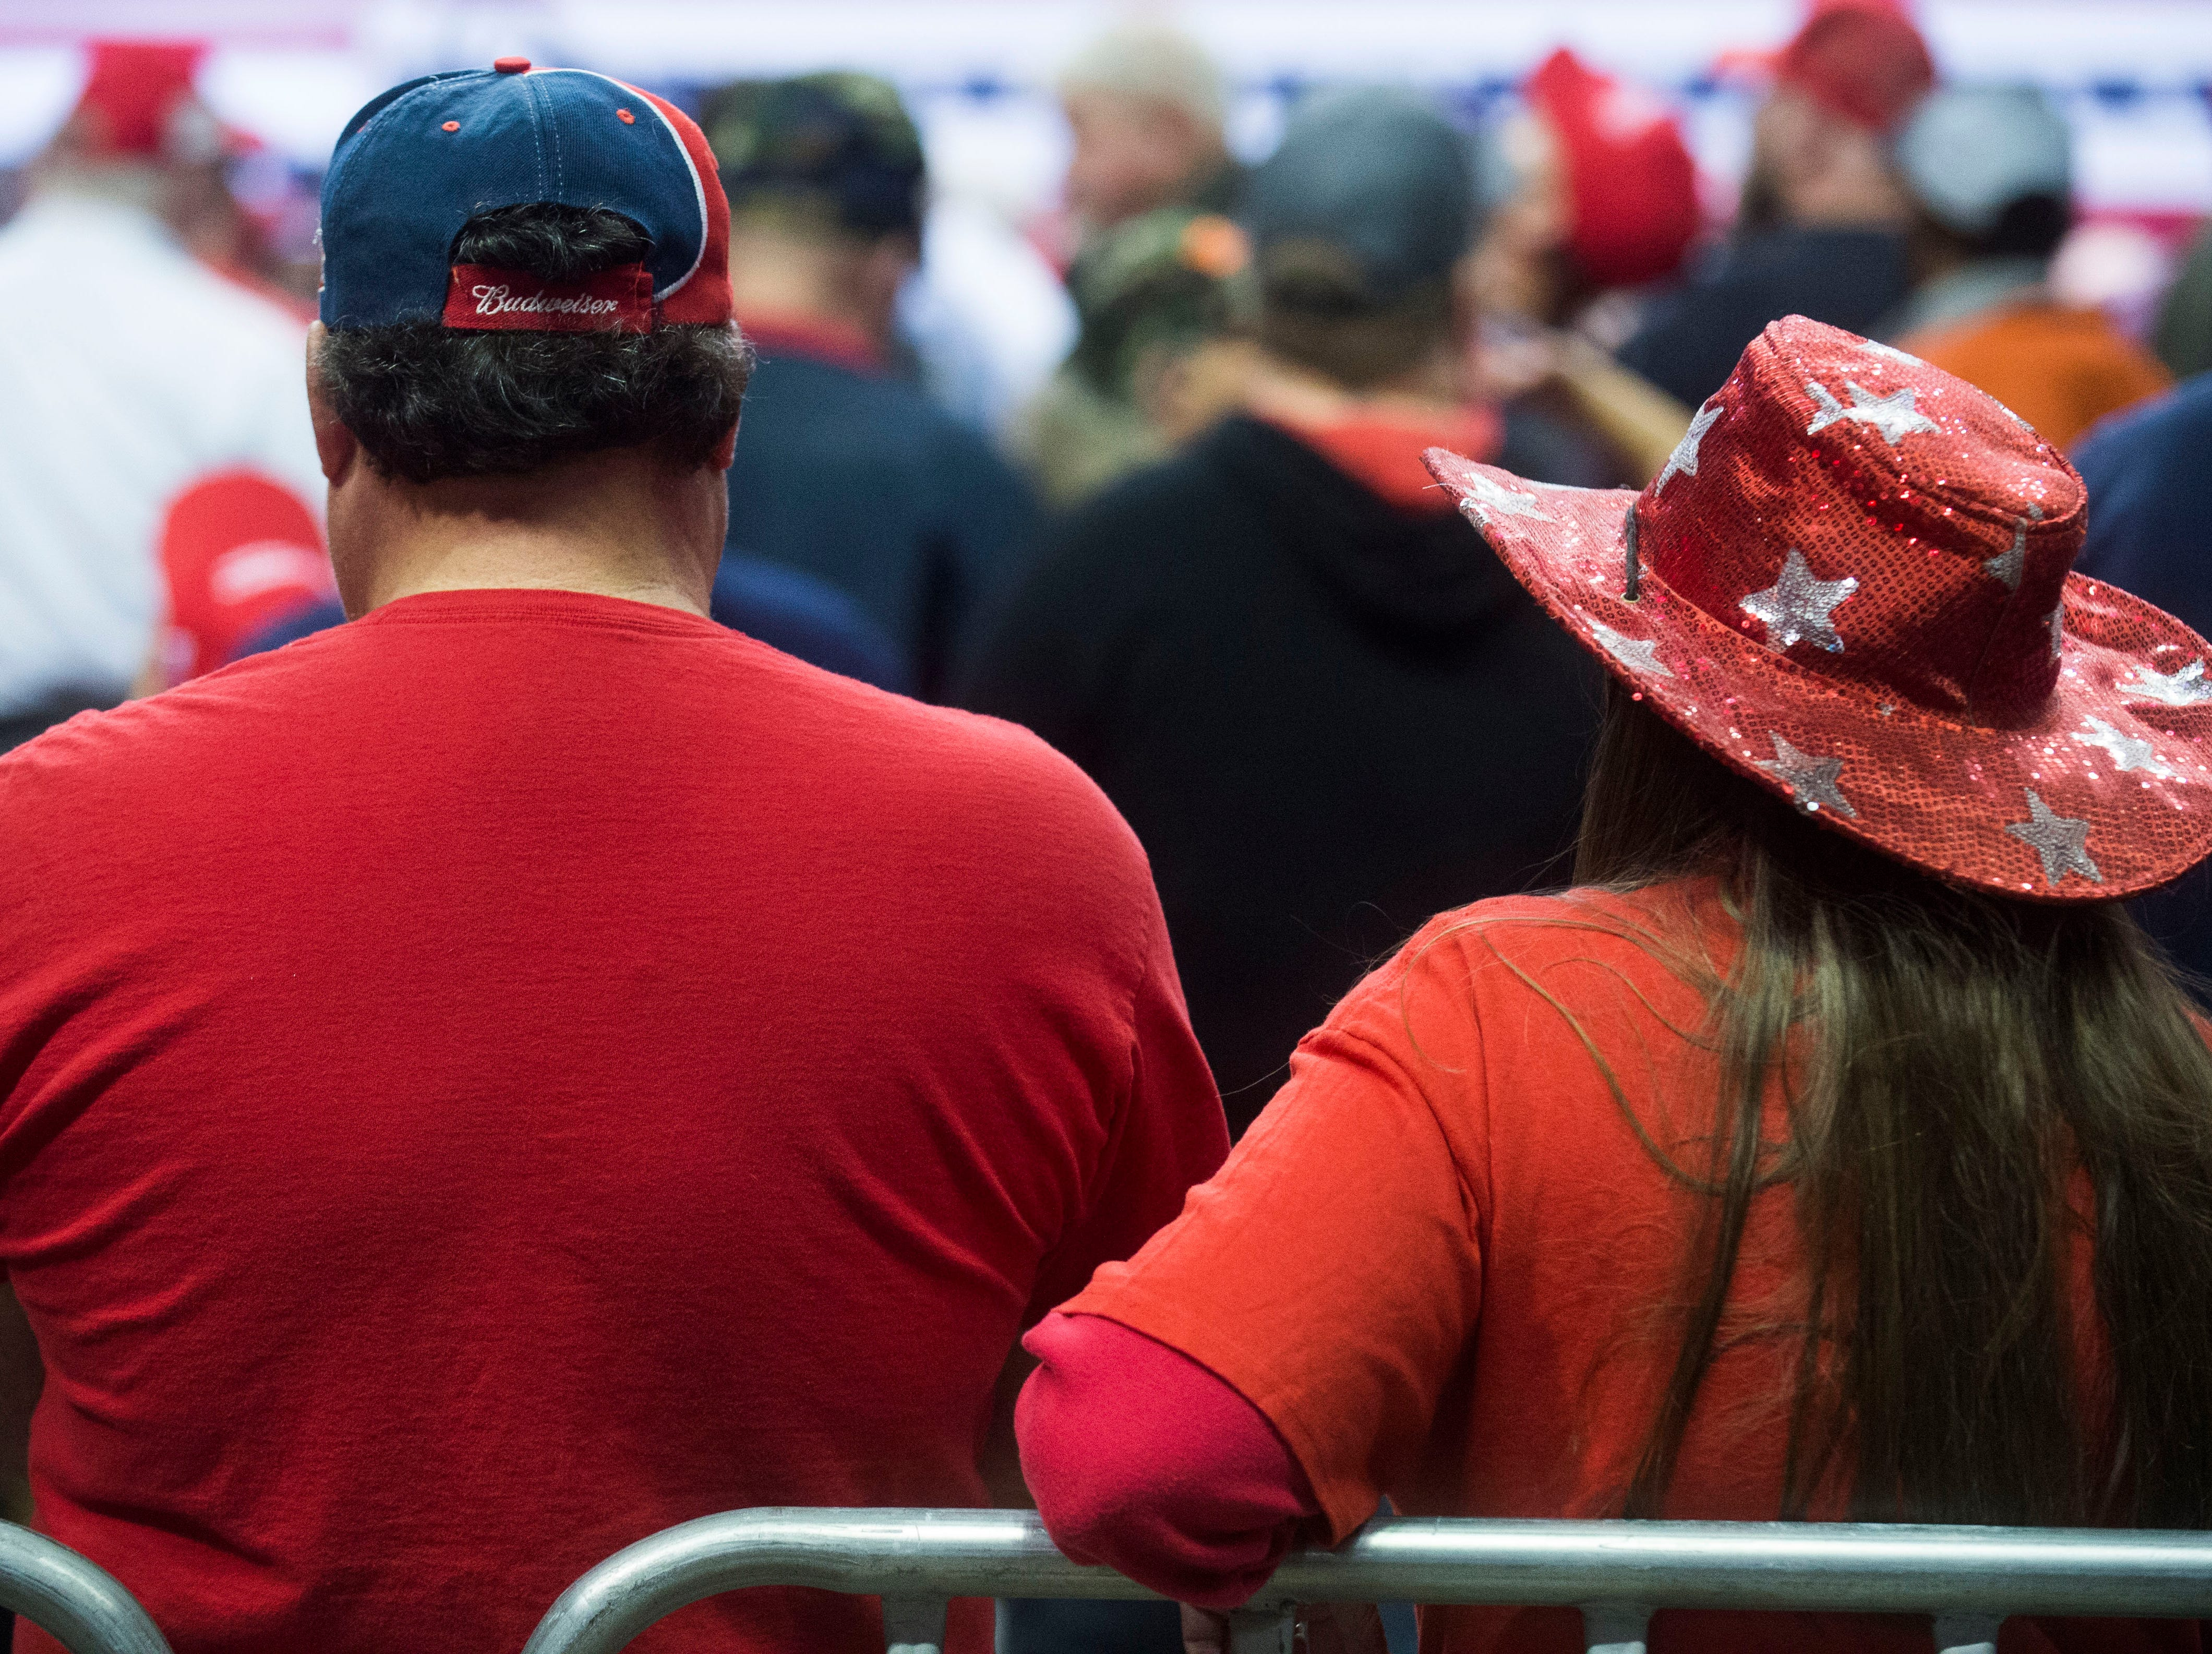 President Trump supporters wait before a Donald Trump rally in support of U.S. Rep. Marsha Blackburn for the U.S. Senate at McKenzie Arena in Chattanooga, Sunday, Nov. 4, 2018.